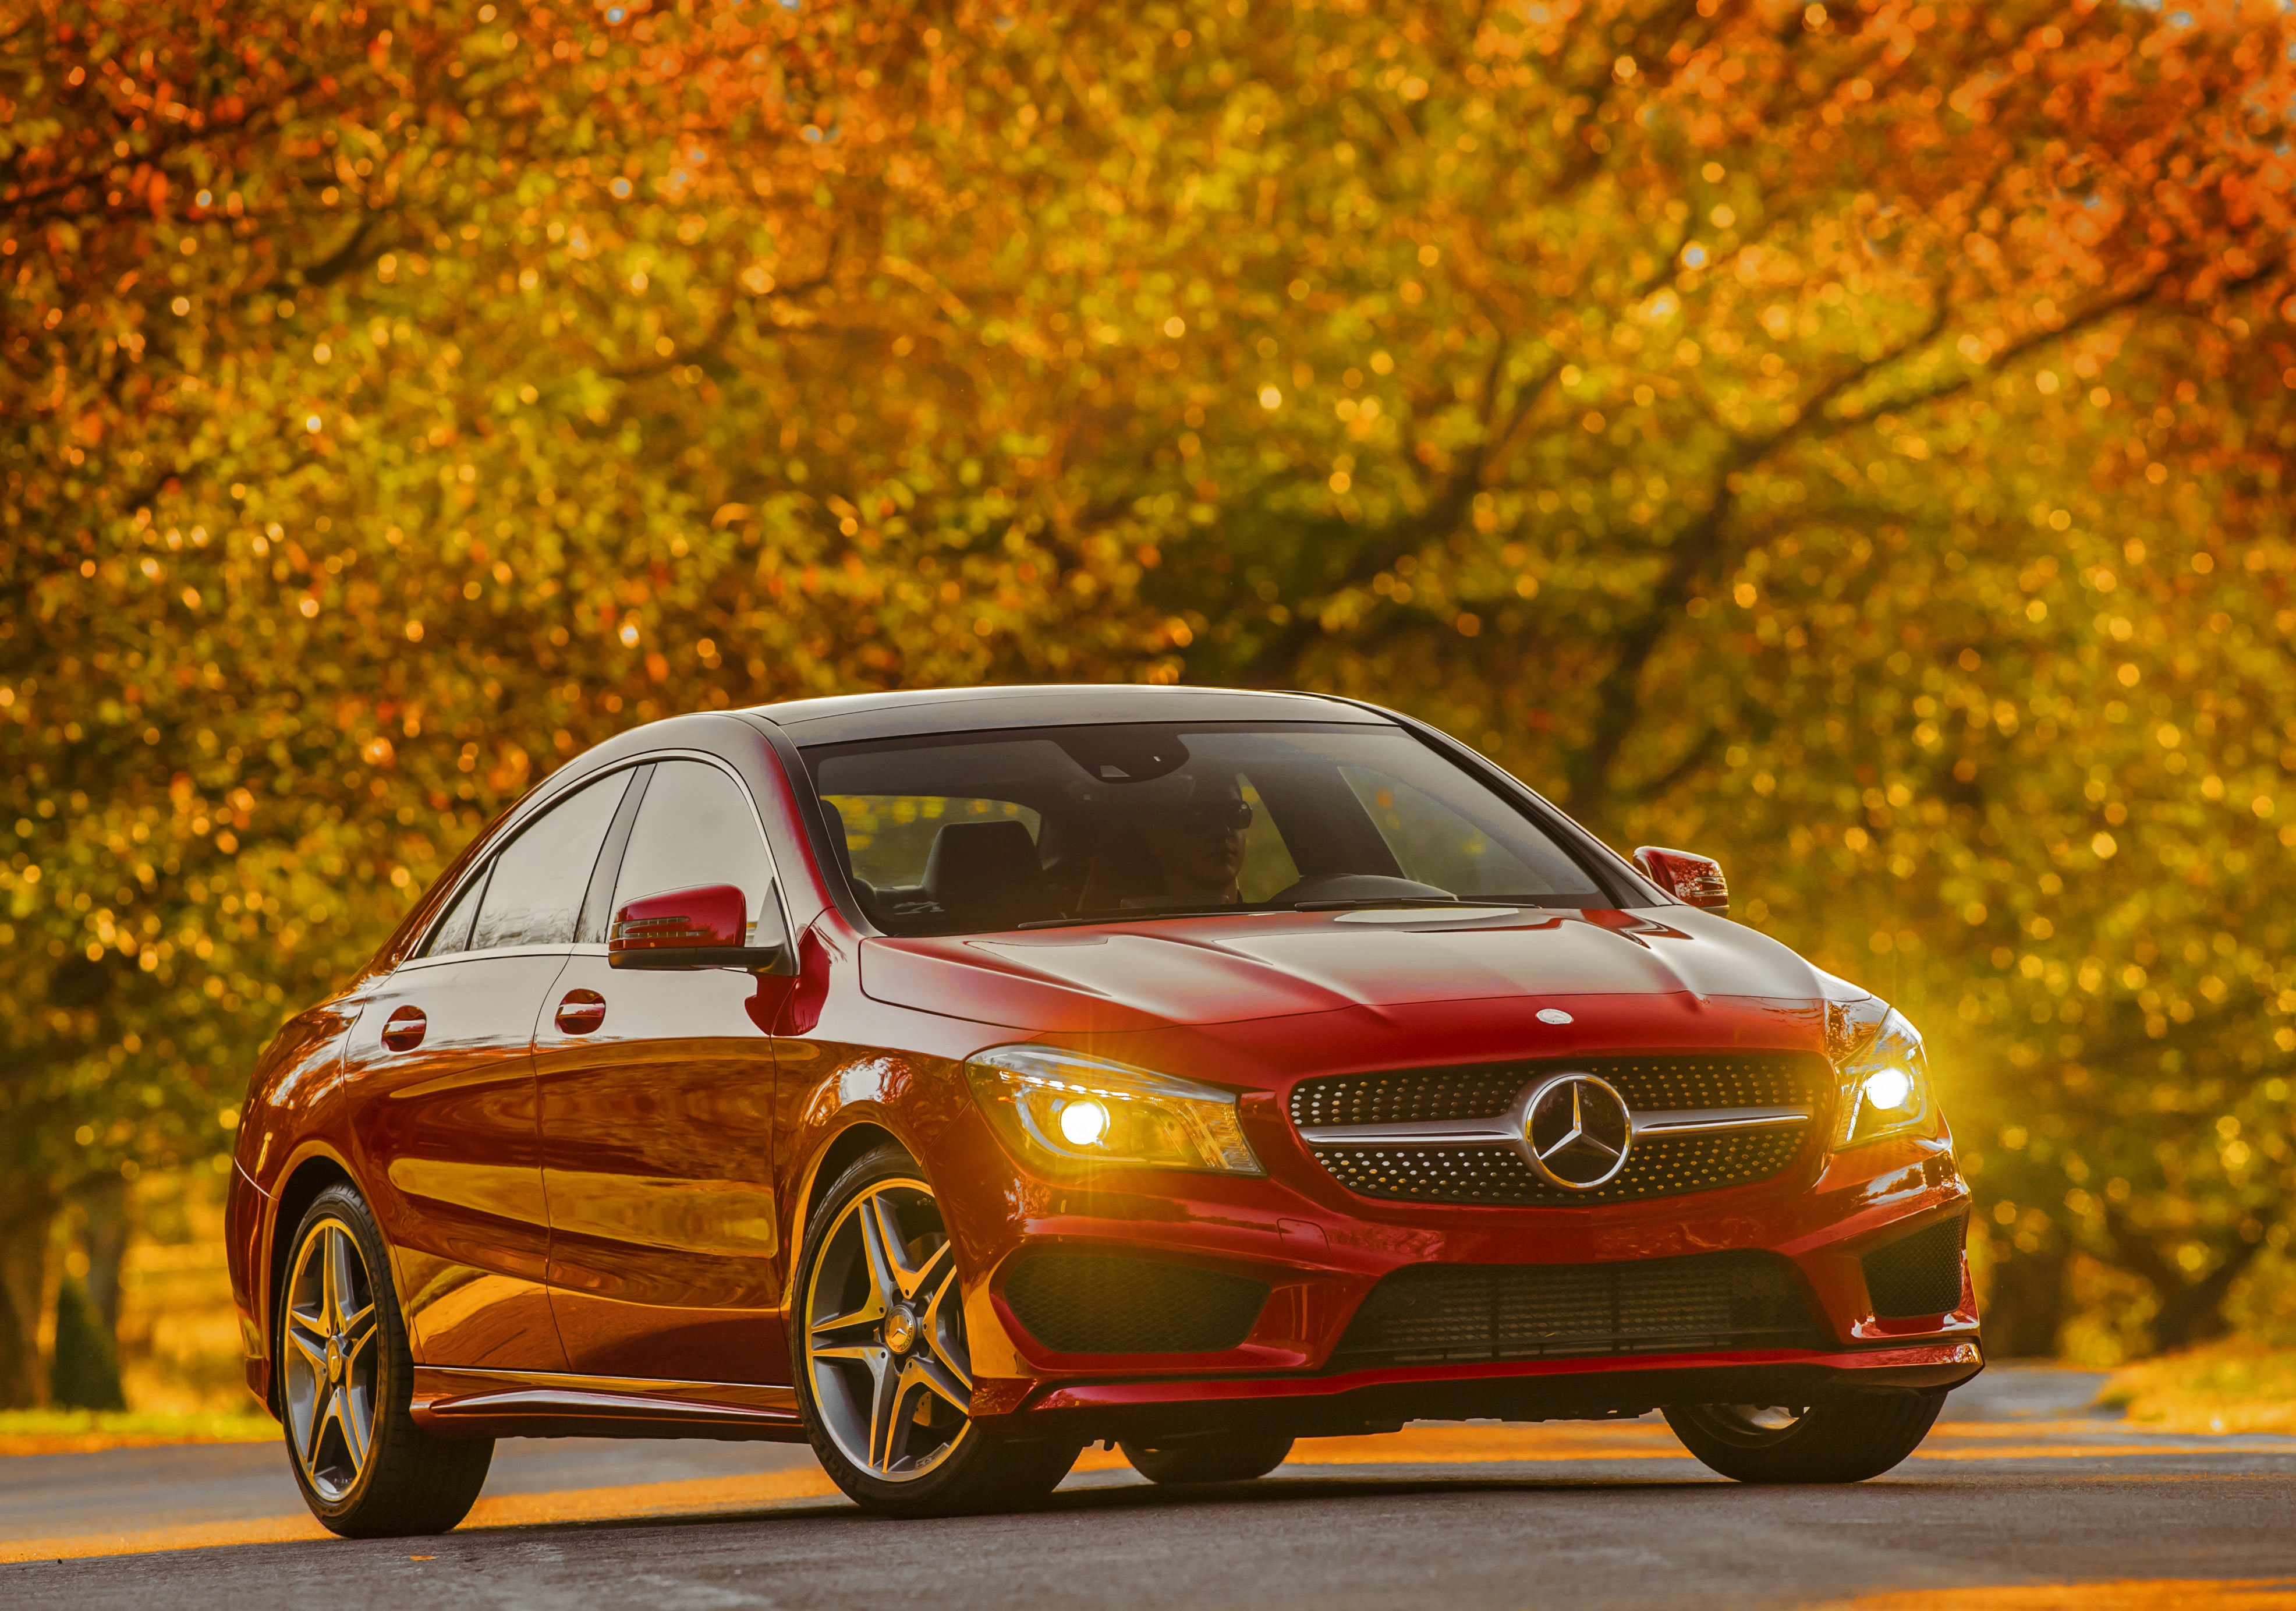 Mercedes benz cla offers upscale luxury at a mid sized for Mercedes benz cla 2014 price